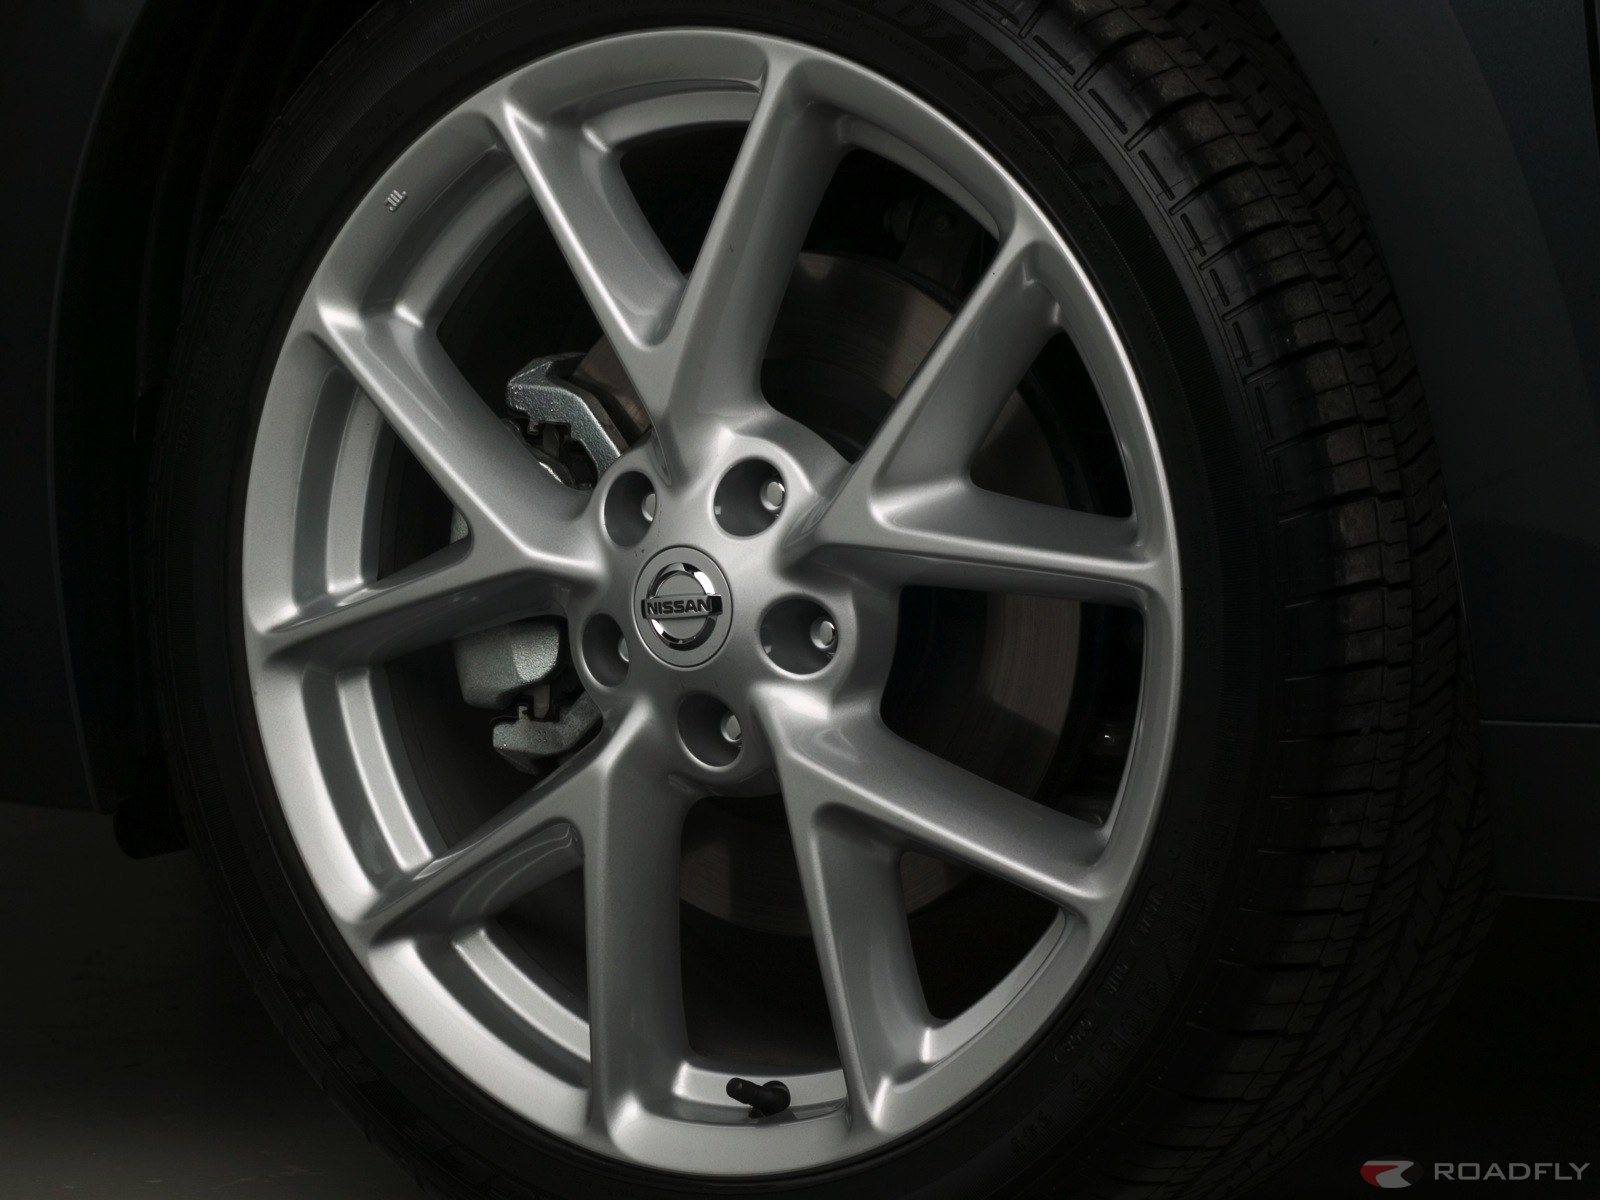 Nissan Maxima wheels #1